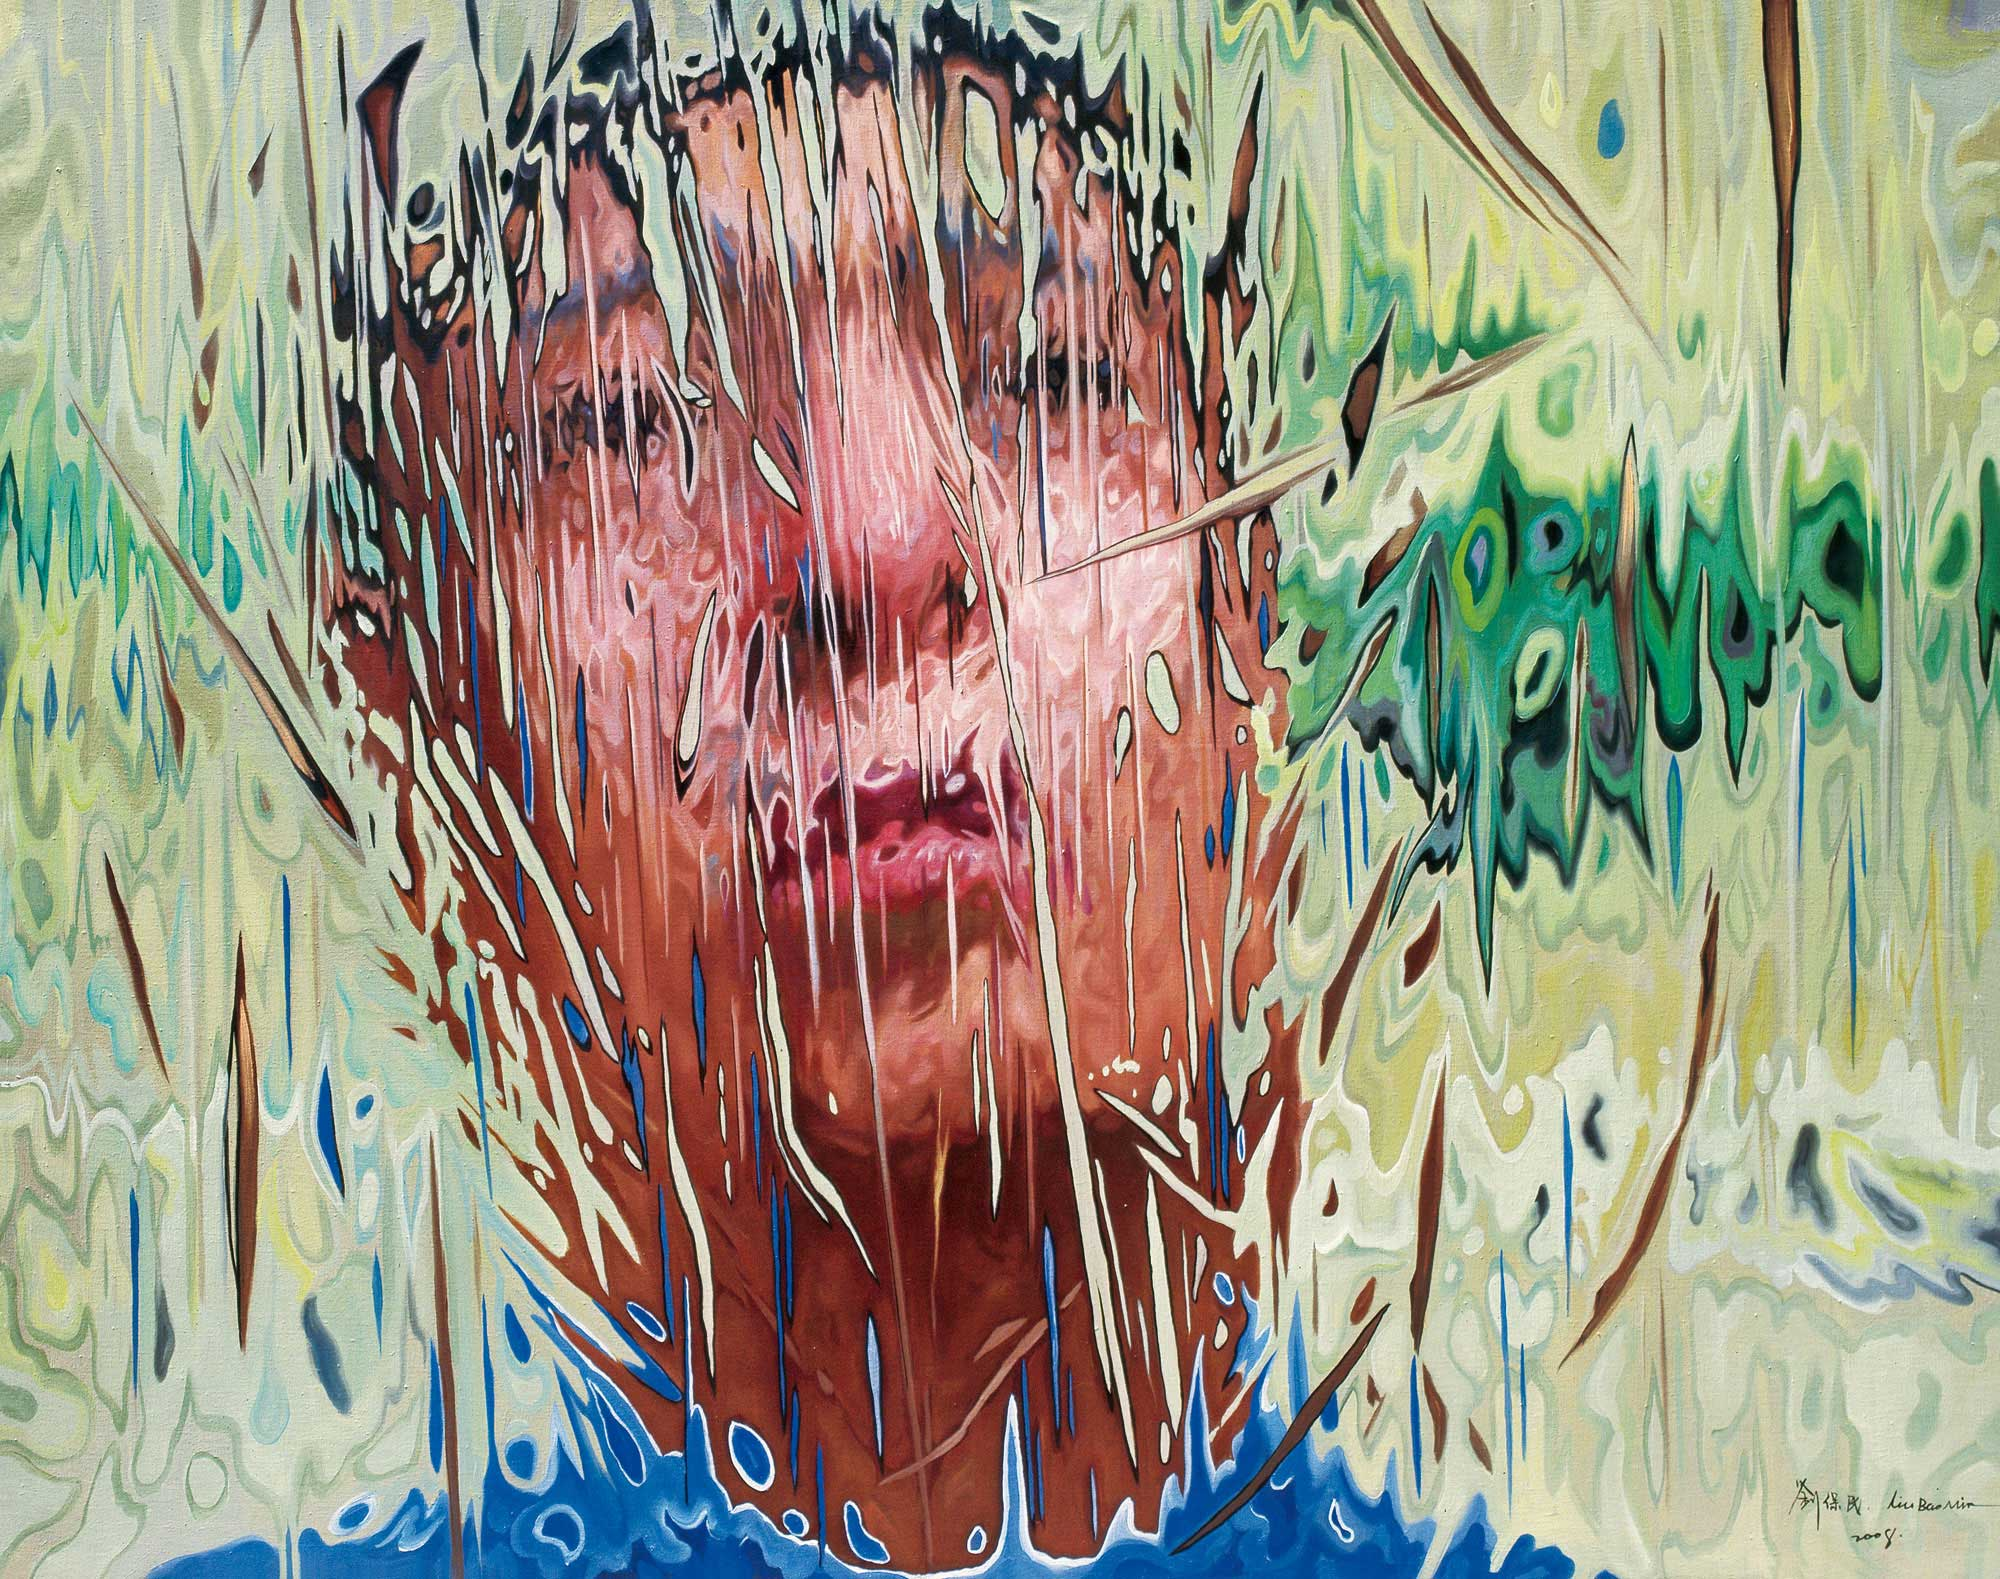 The Work of China's Liu Baomin: liu_baomin_10_20120909_2054852456.jpeg